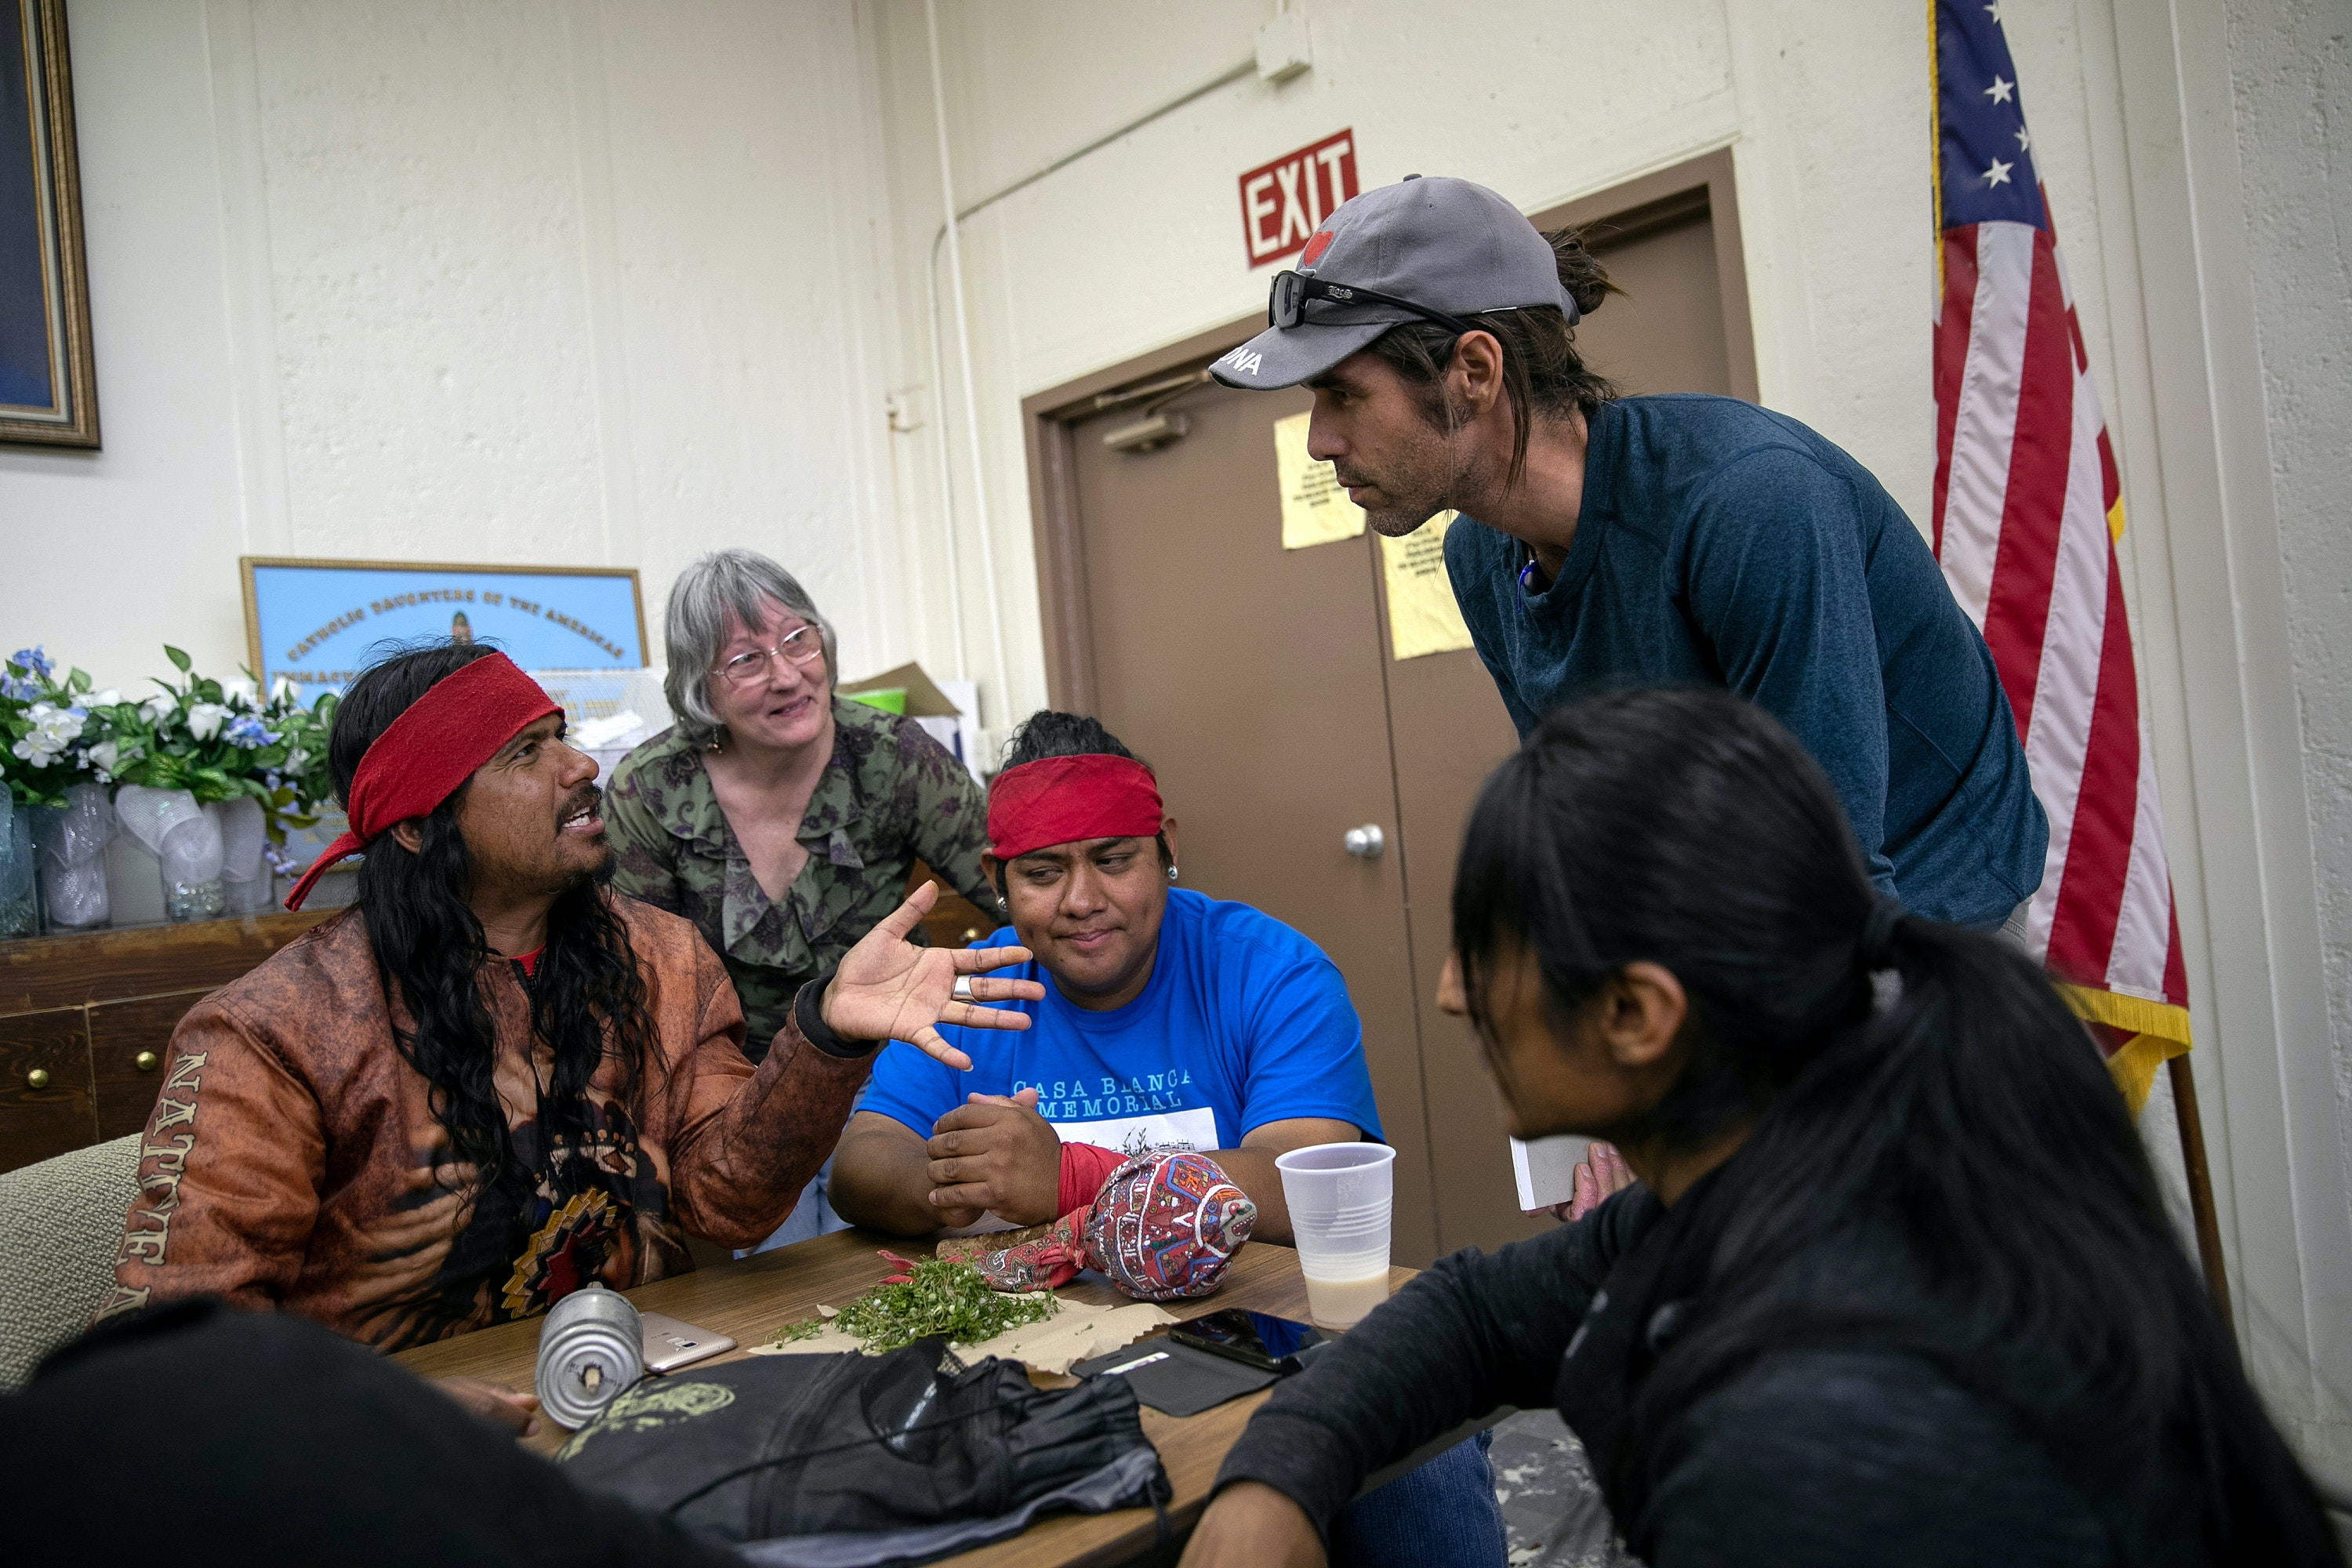 AJO, ARIZONA - MAY 10: Scott Warren, a volunteer for the humanitarian aid organization No More Deaths speaks with local residents during a community meeting to discuss federal charges against him for aiding undocumented immigrants on May 10, 2019 in Ajo, Arizona. Warren is scheduled to appear in court for felony charges on May 29 in Tucson, accused by the U.S. government on two counts of harboring and one count of conspiracy for providing food, water, and beds to two Central American immigrants in January, 2018. If found guilty Warren could face up to 20 years in prison. The trial is seen as a watershed case by the Trump Administration, as it pressures humanitarian organizations working to reduce suffering and deaths of immigrants along the border. The government says the aid encourages human smuggling. In a separate misdemeanor case, federal prosecutors have charged Warren with public littering, for distributing food and water along migrant trails. (Photo by John Moore/Getty Images)